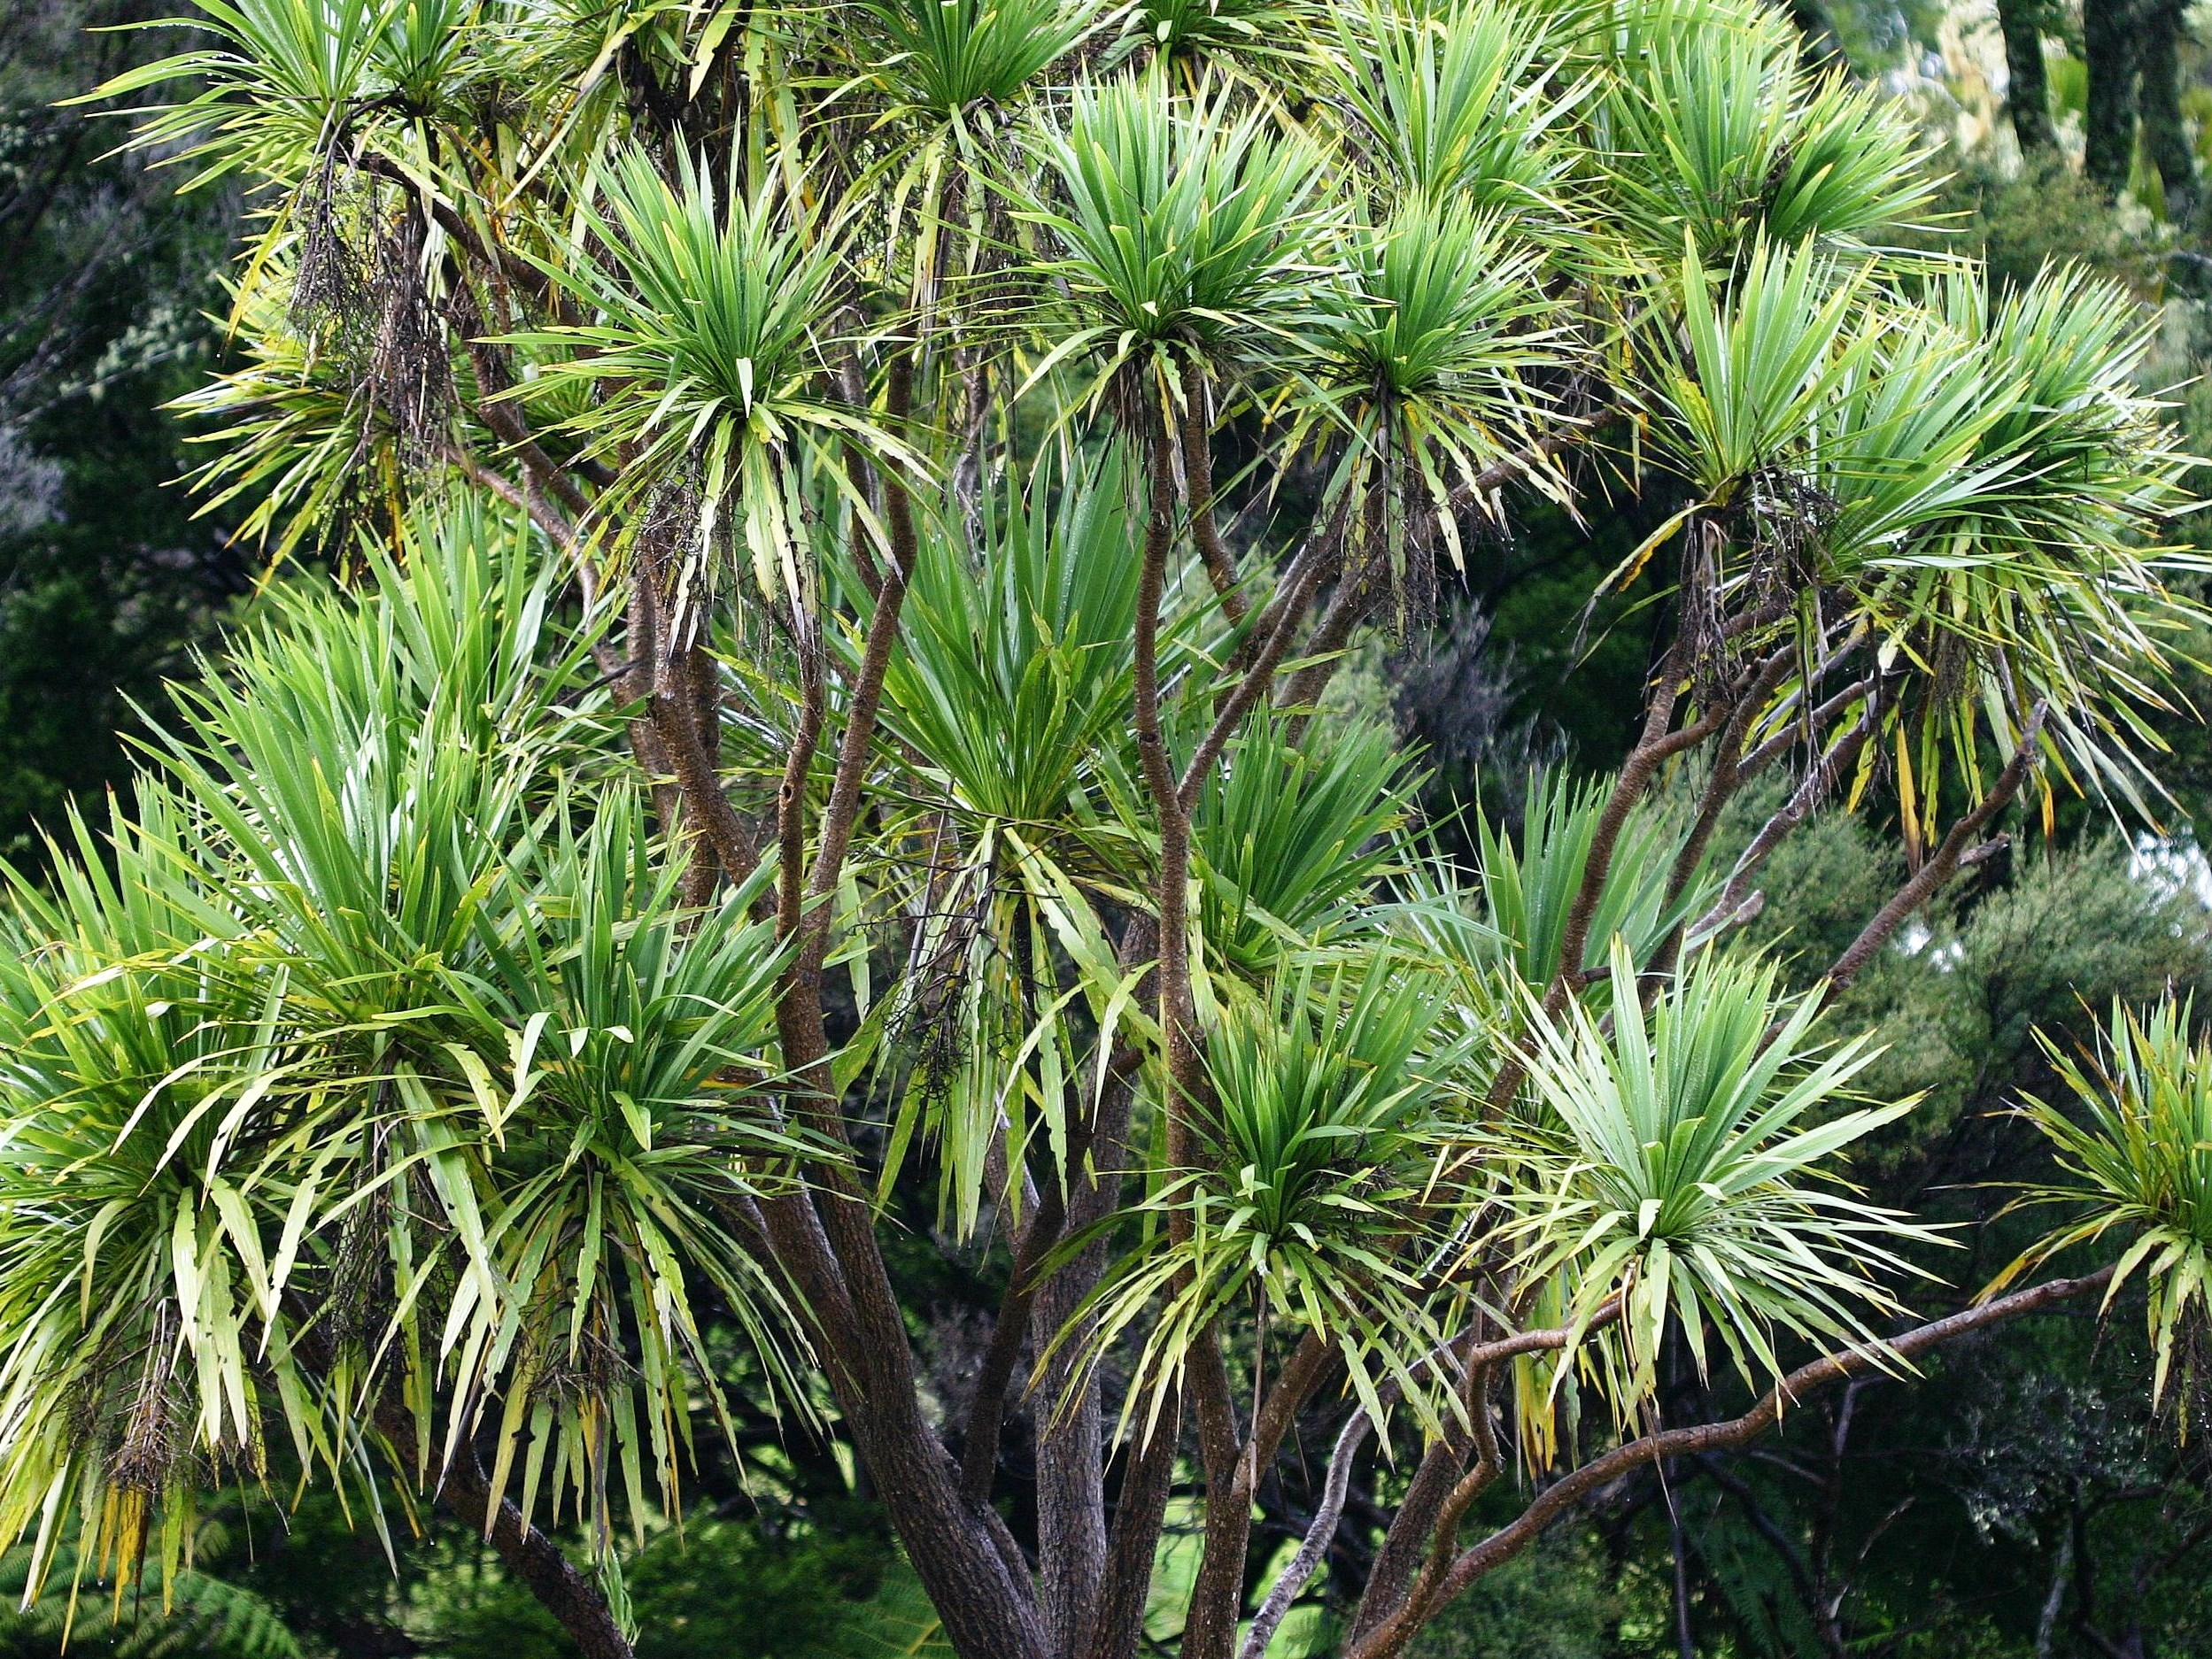 Cordyline australis by Tony Foster